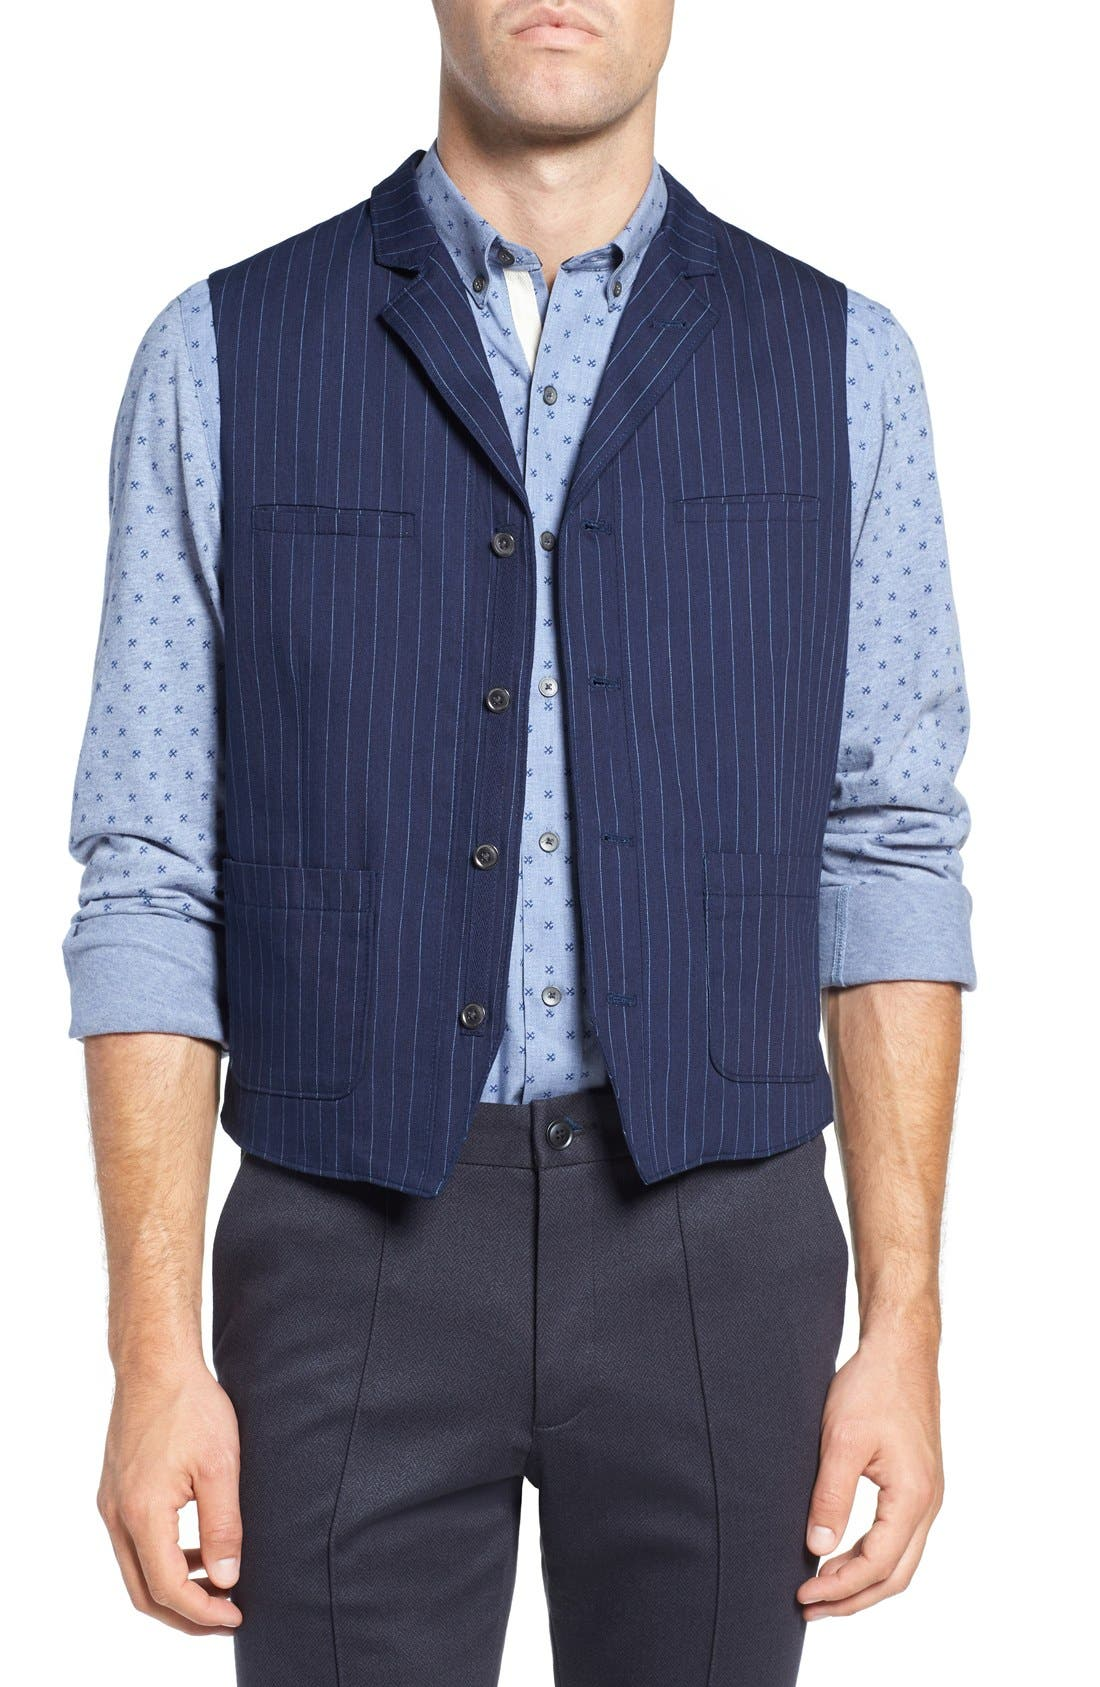 Windsor Pinstripe Cotton Twill Vest,                             Main thumbnail 1, color,                             Navy